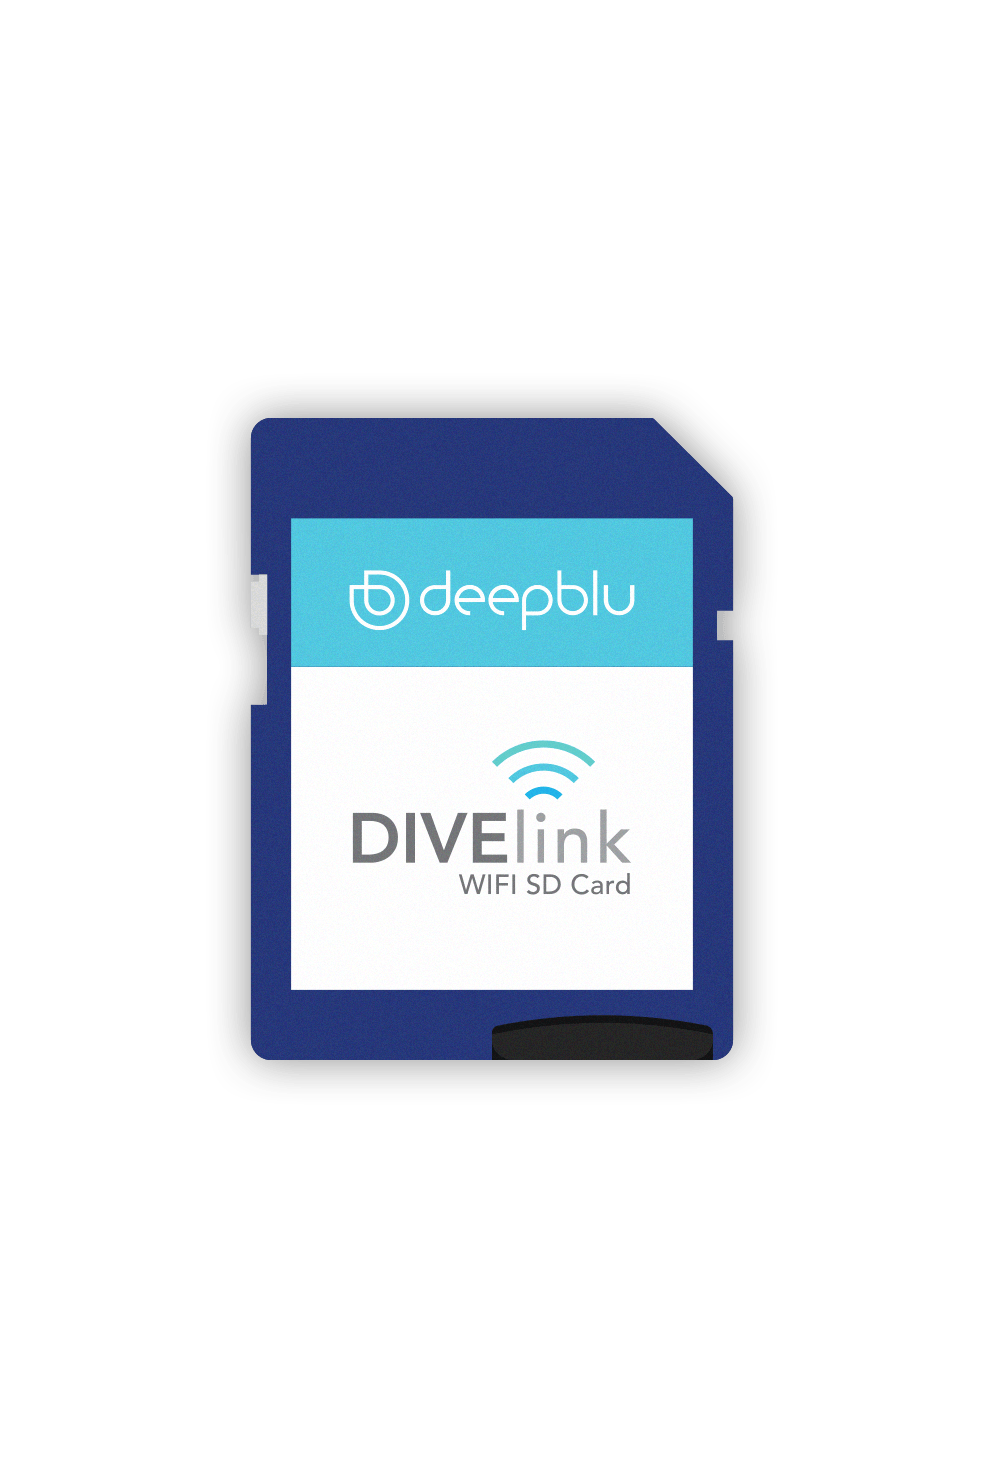 DIVElink Wi-Fi SD Card